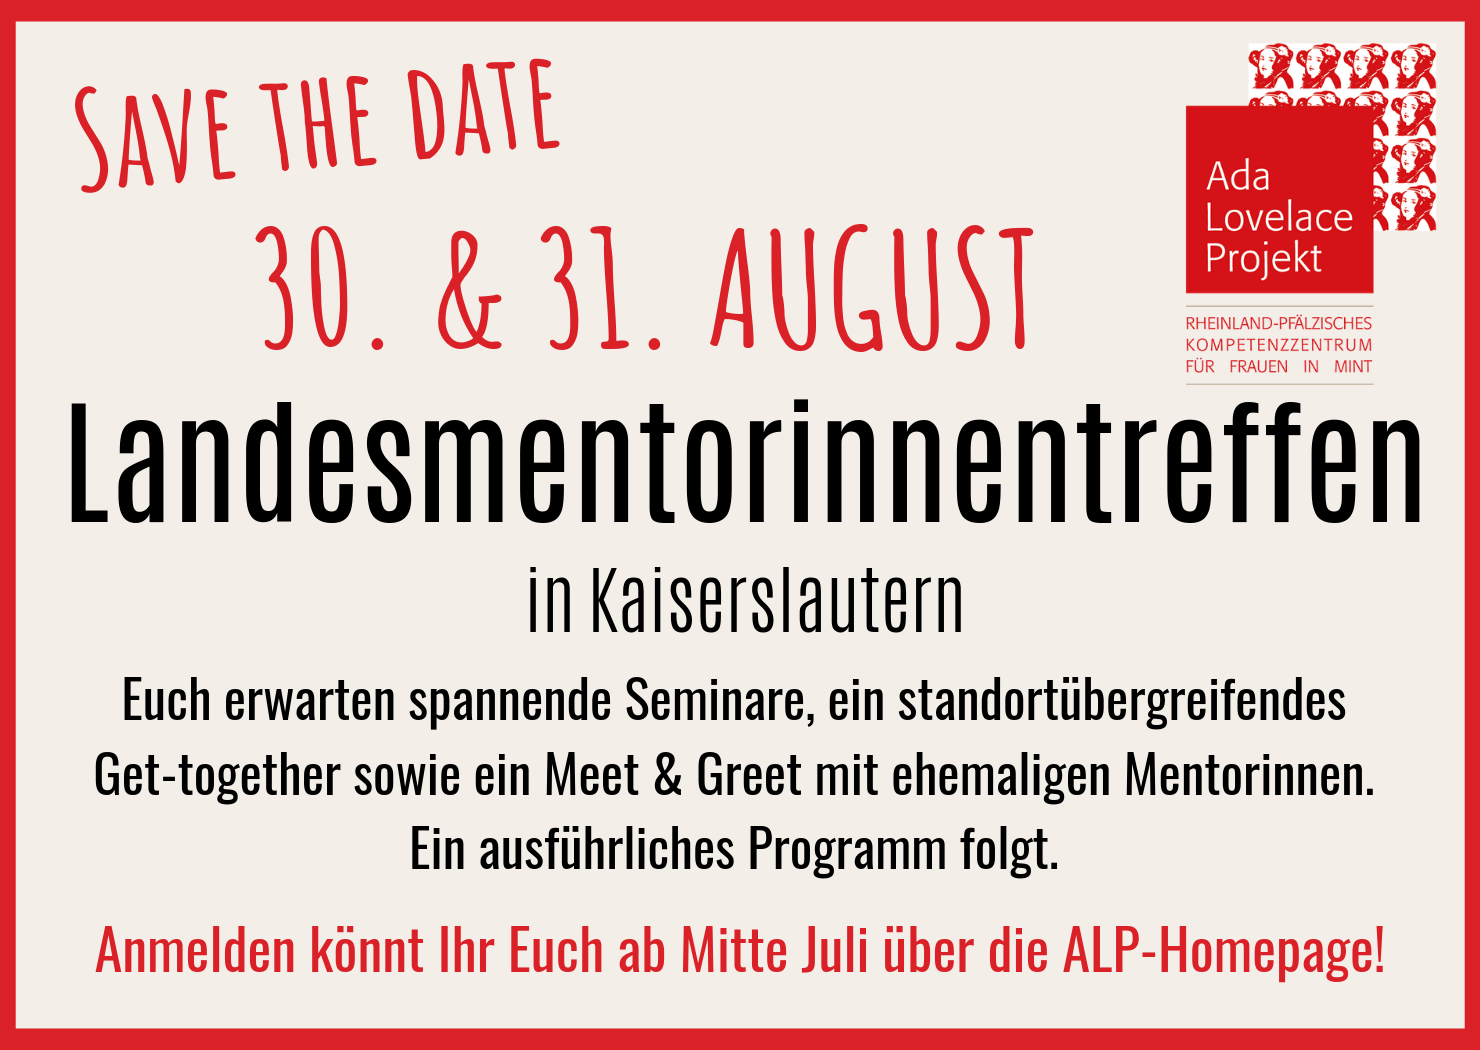 Save the Date: Landesmentorinnentreffen